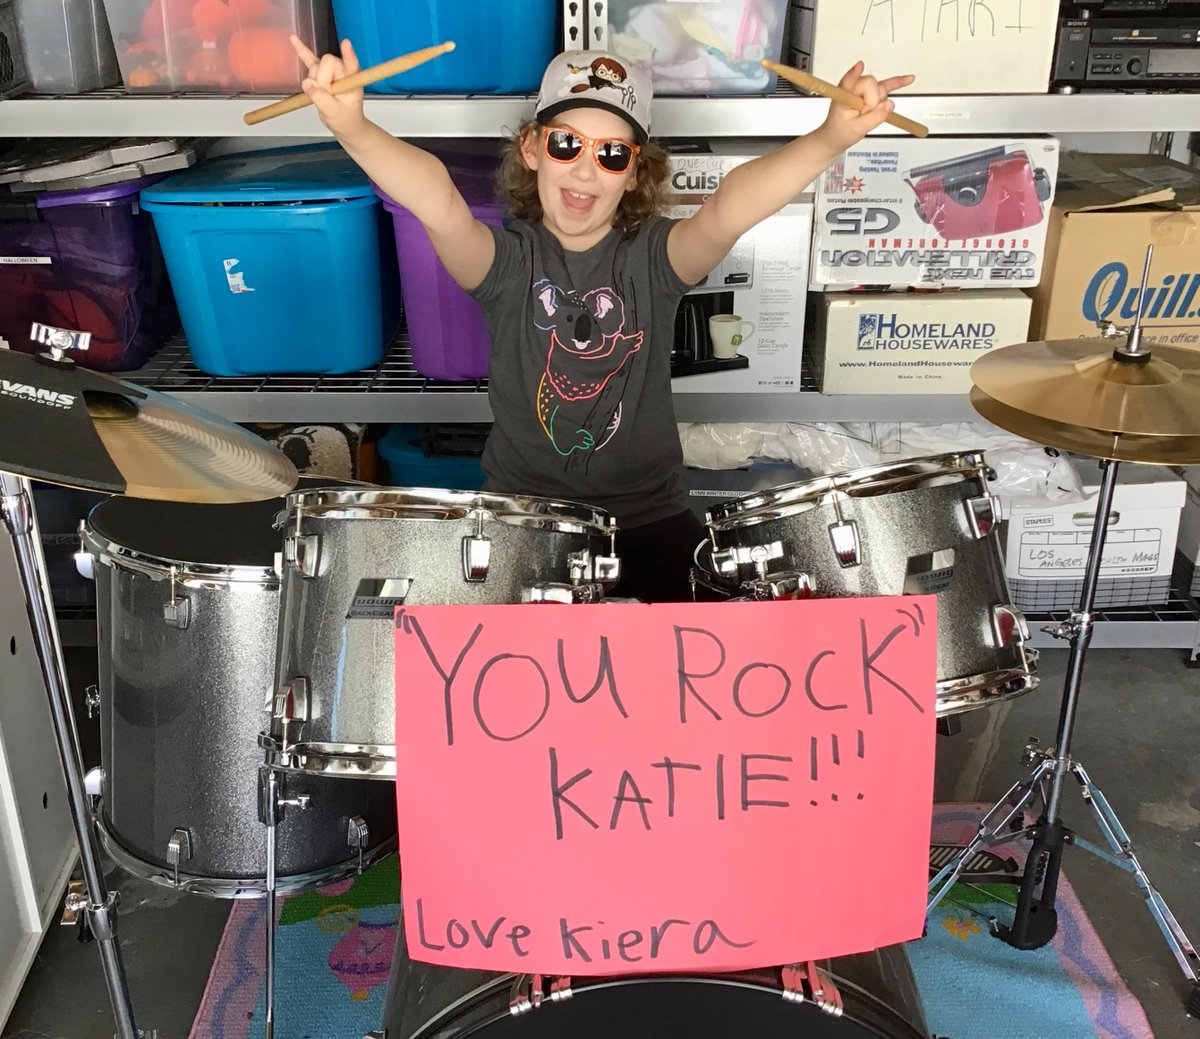 WE HAVE SOME OF THE GREATEST STUDENTS EVER! This gem is from our #TeacherAppreciationWeek! YOU ROCK, KATIE 💕 #flashbackfriday #fbf https://t.co/UNlQTxYxLW